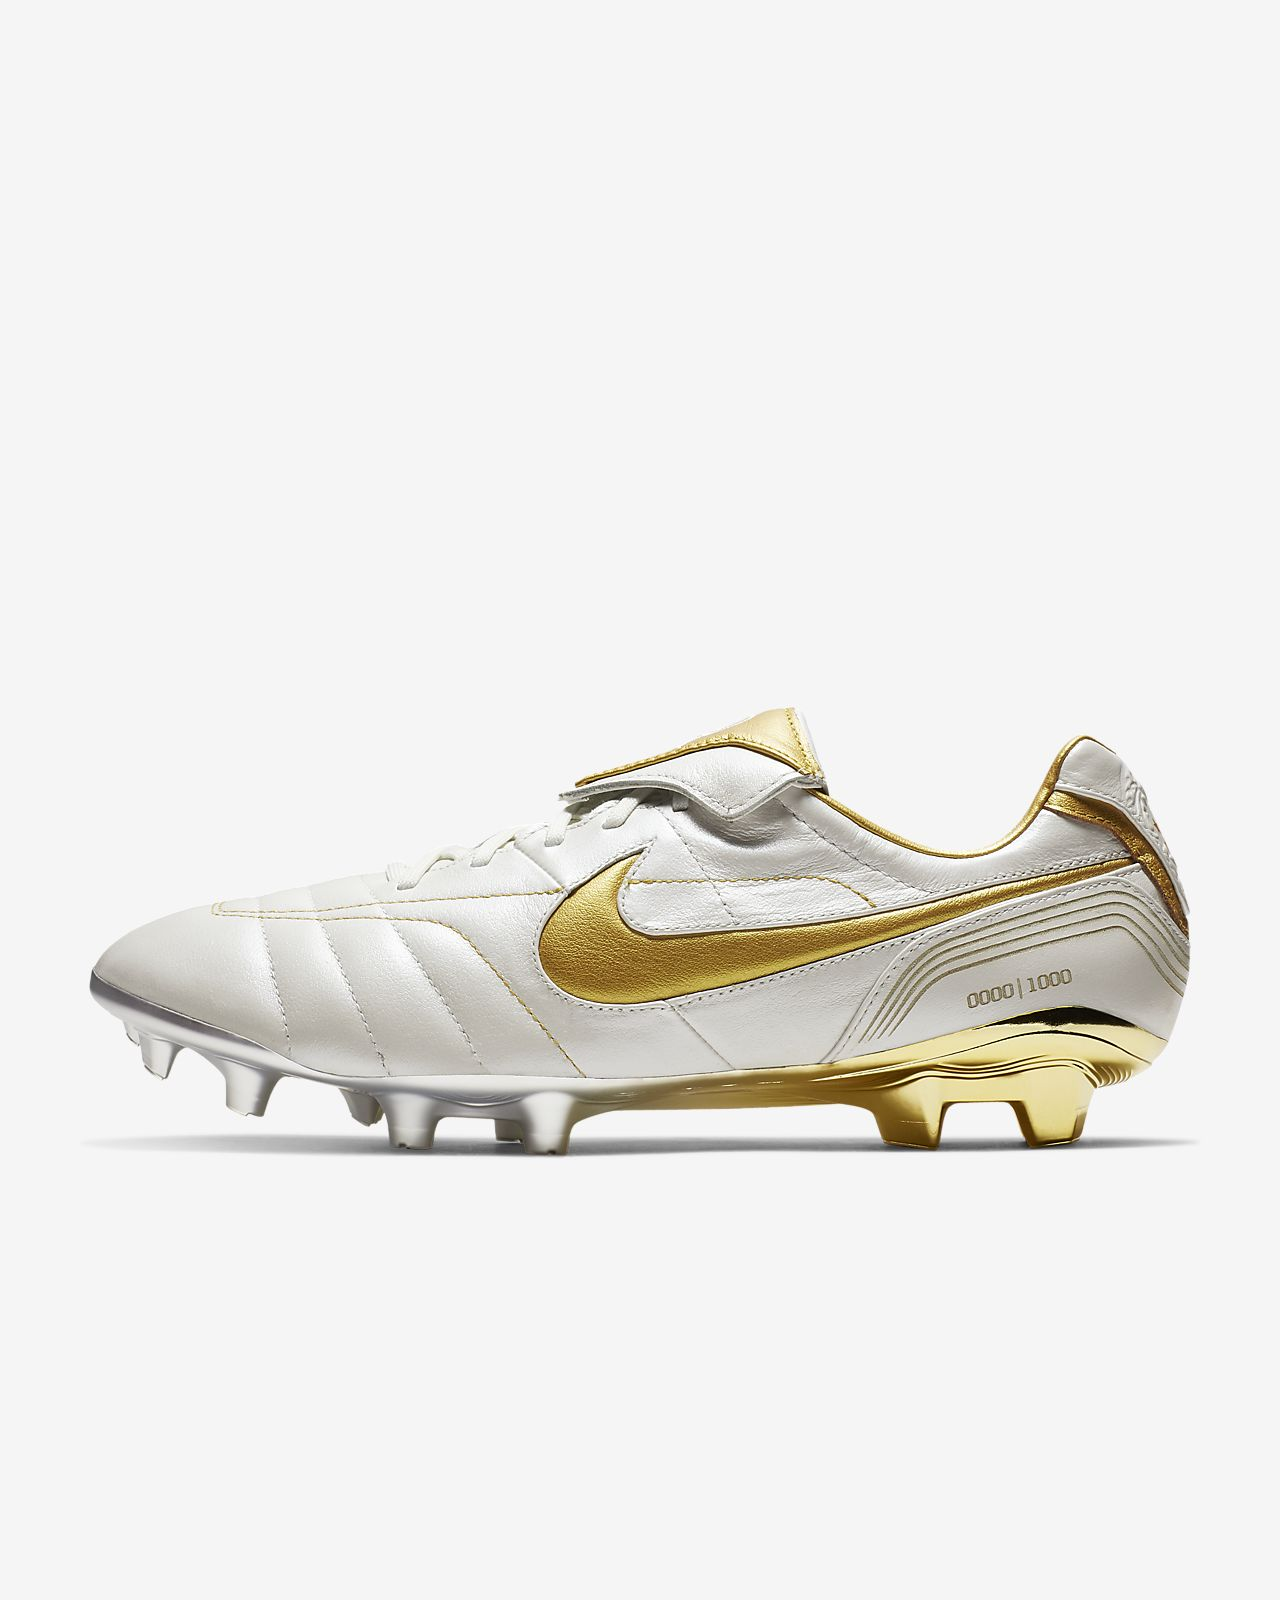 Nike Legend 7 Elite 10R FG Firm-Ground Football Boot